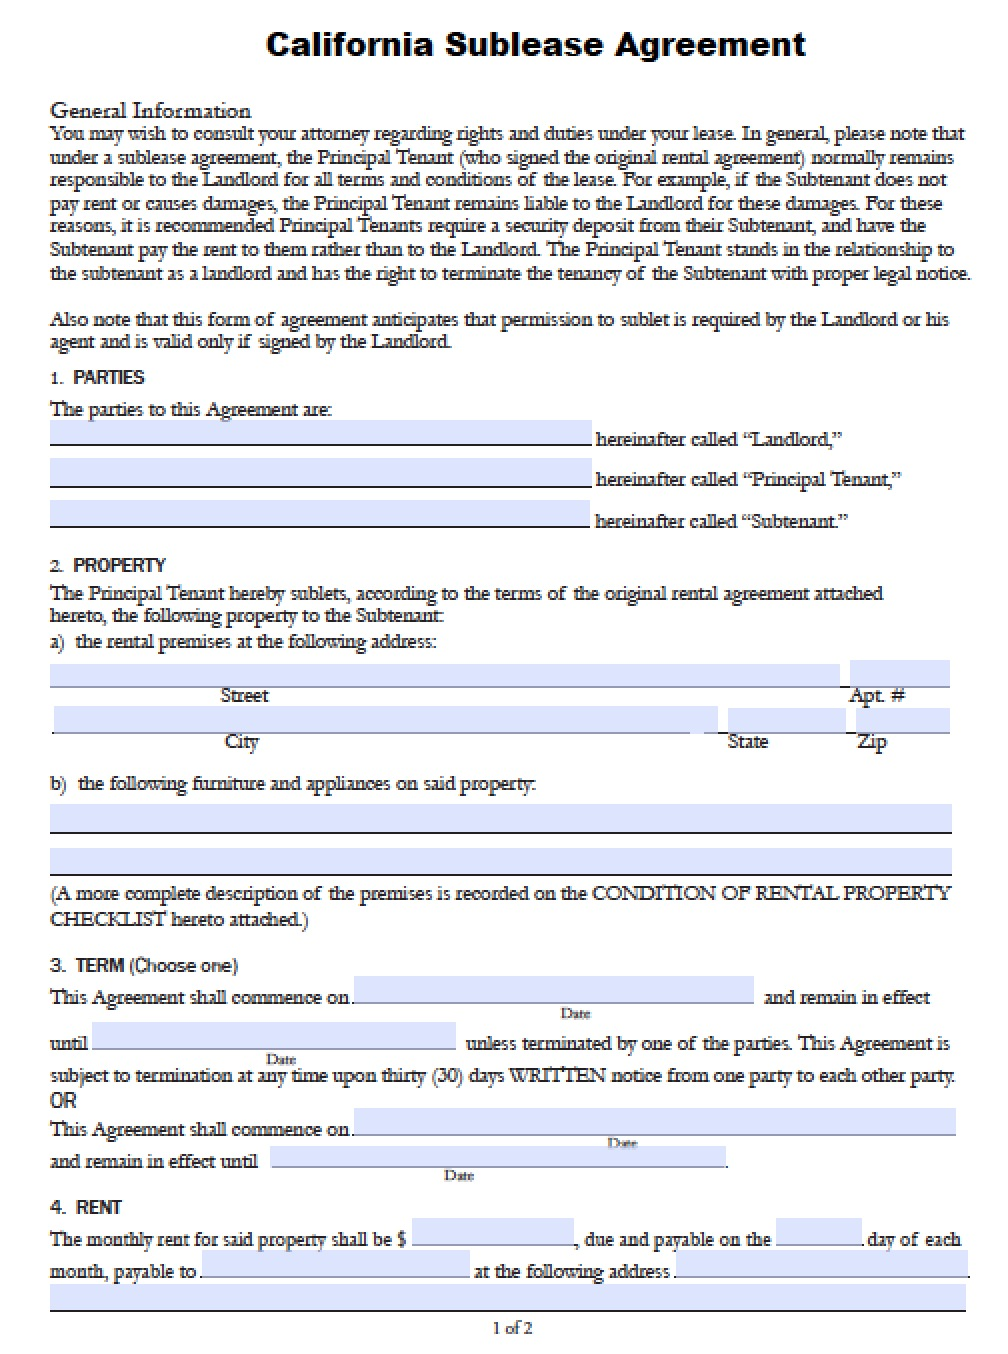 Free California SubLease Agreement PDF Word Doc - Leasehold agreement template